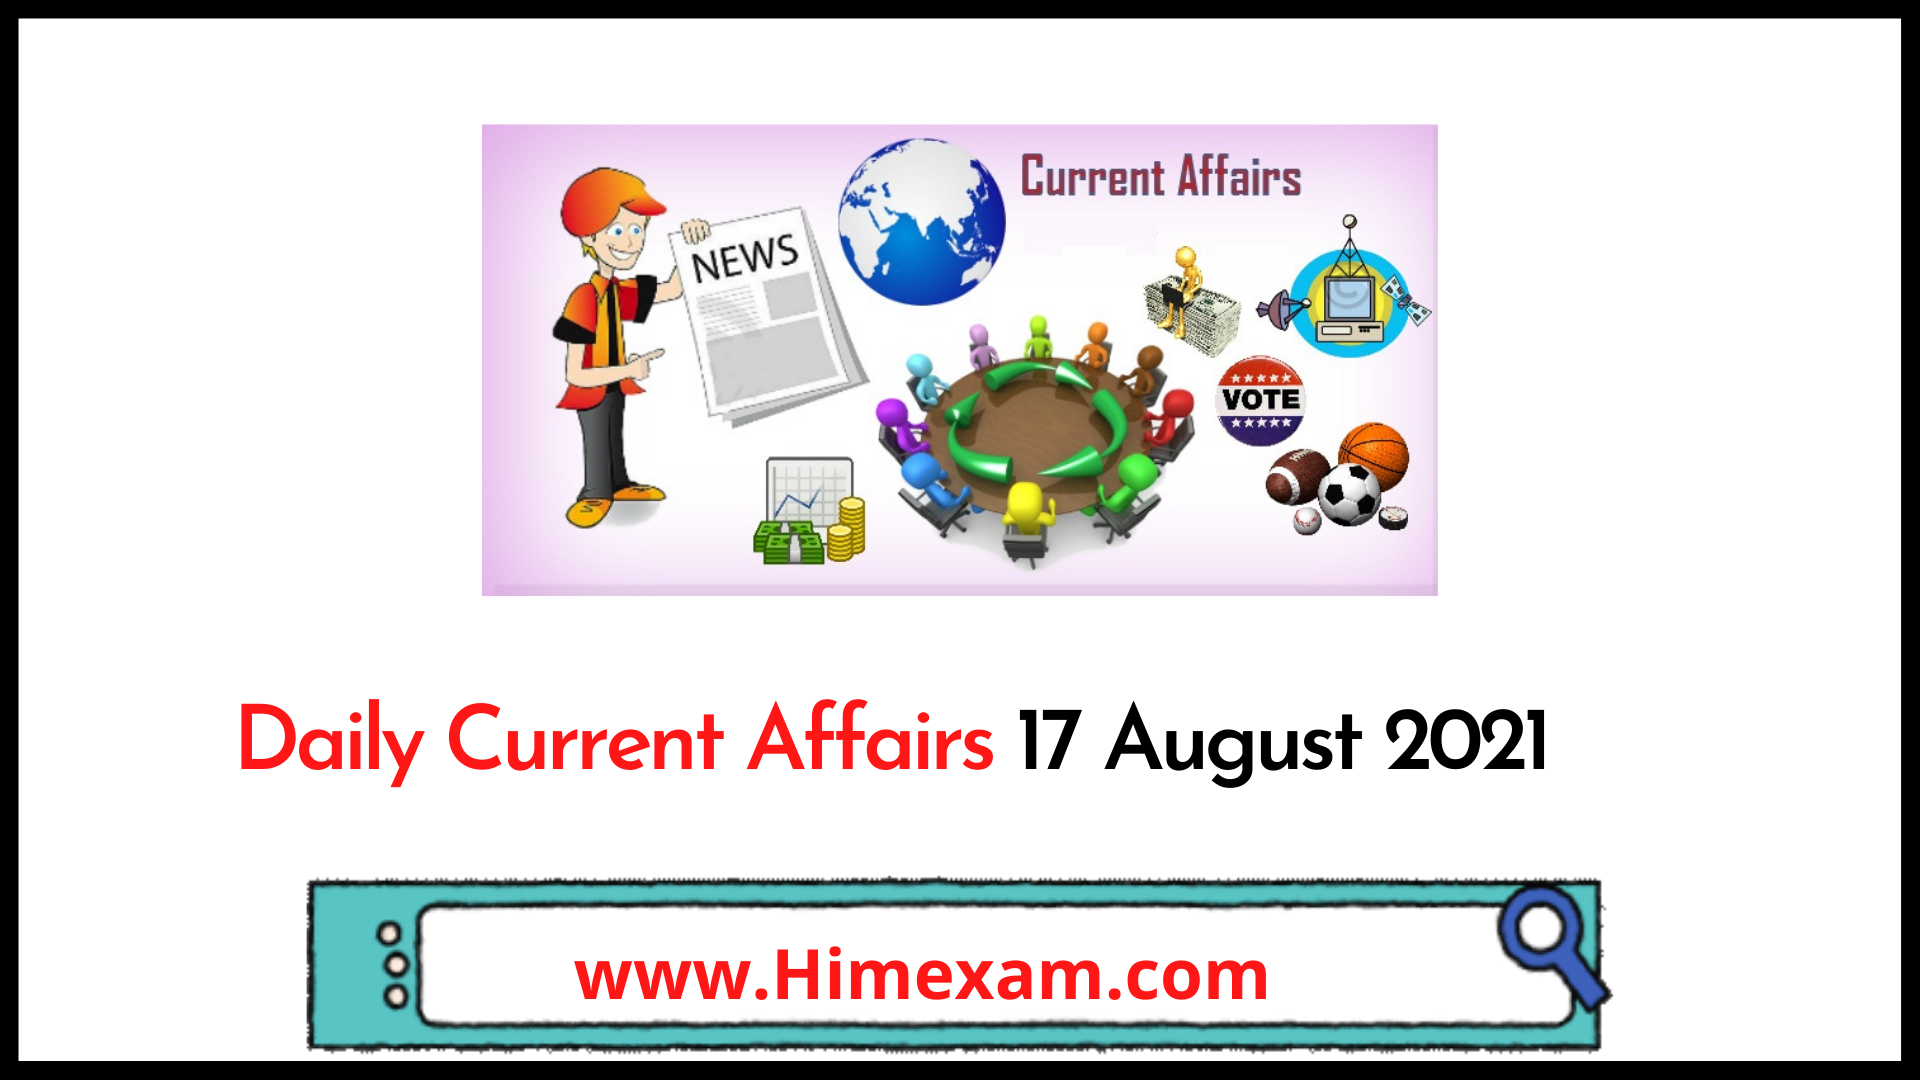 Daily Current Affairs 17 August 2021